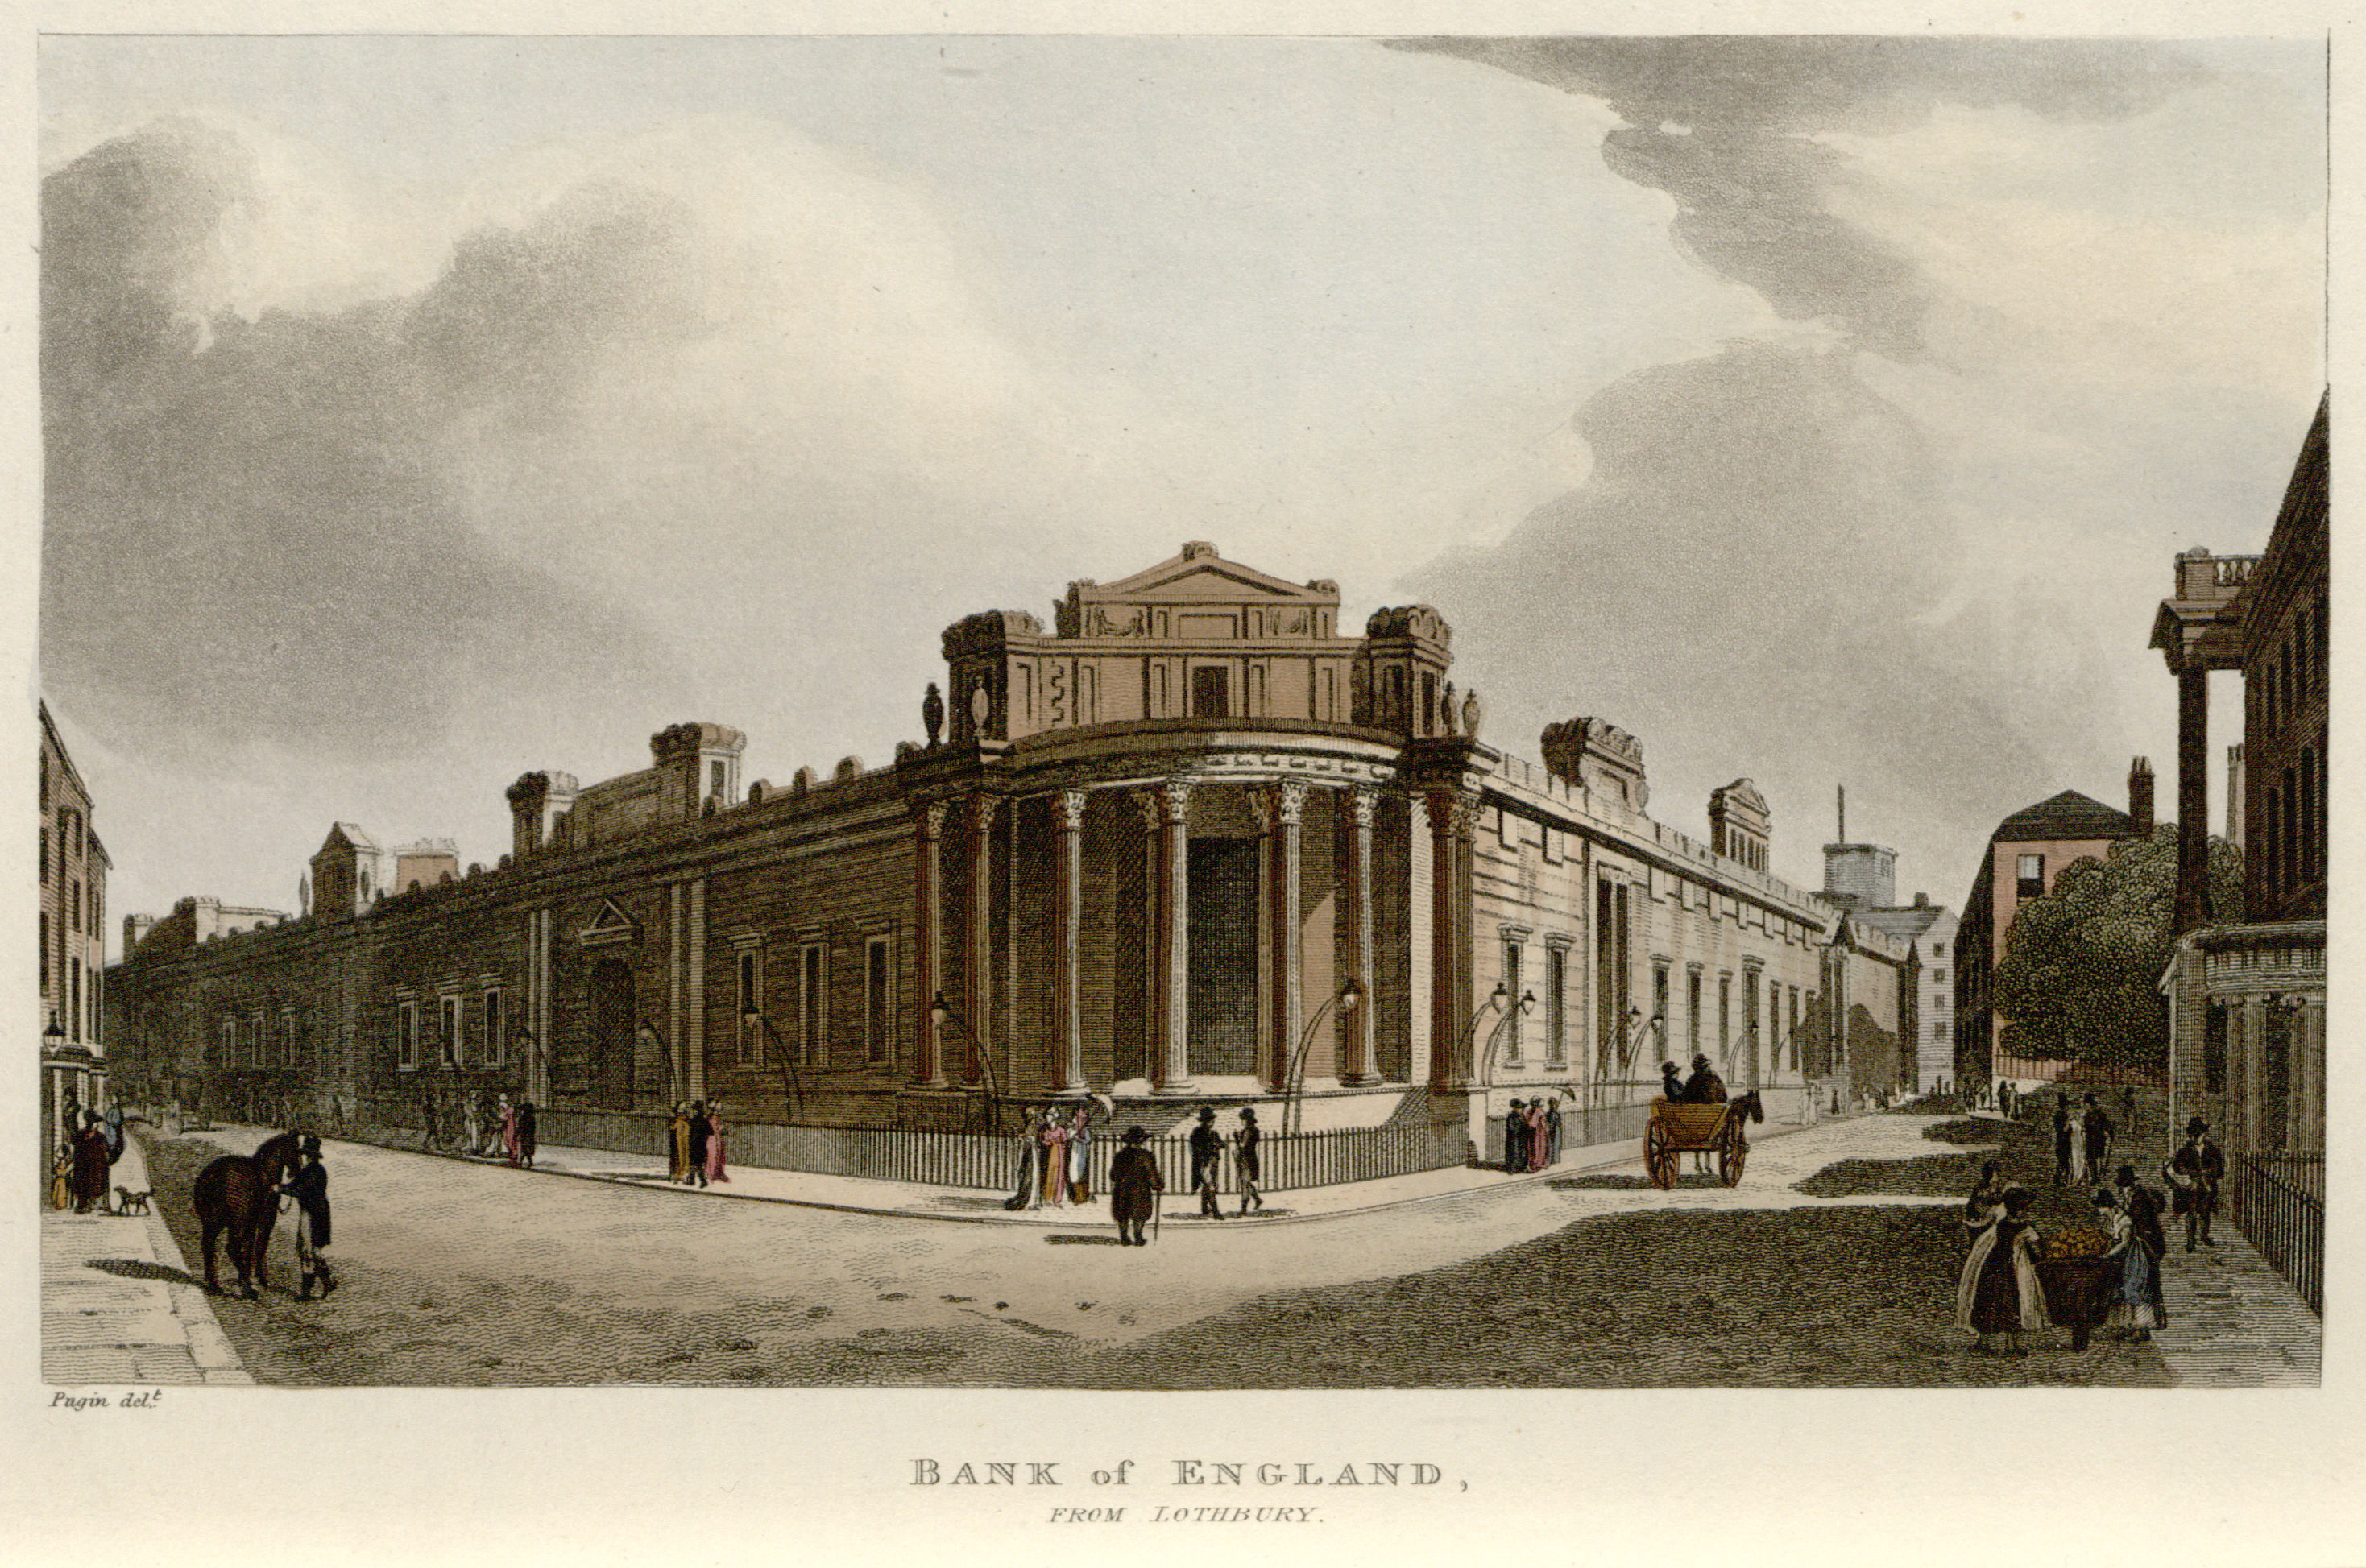 53 - Papworth - Bank of England, From Lothbury